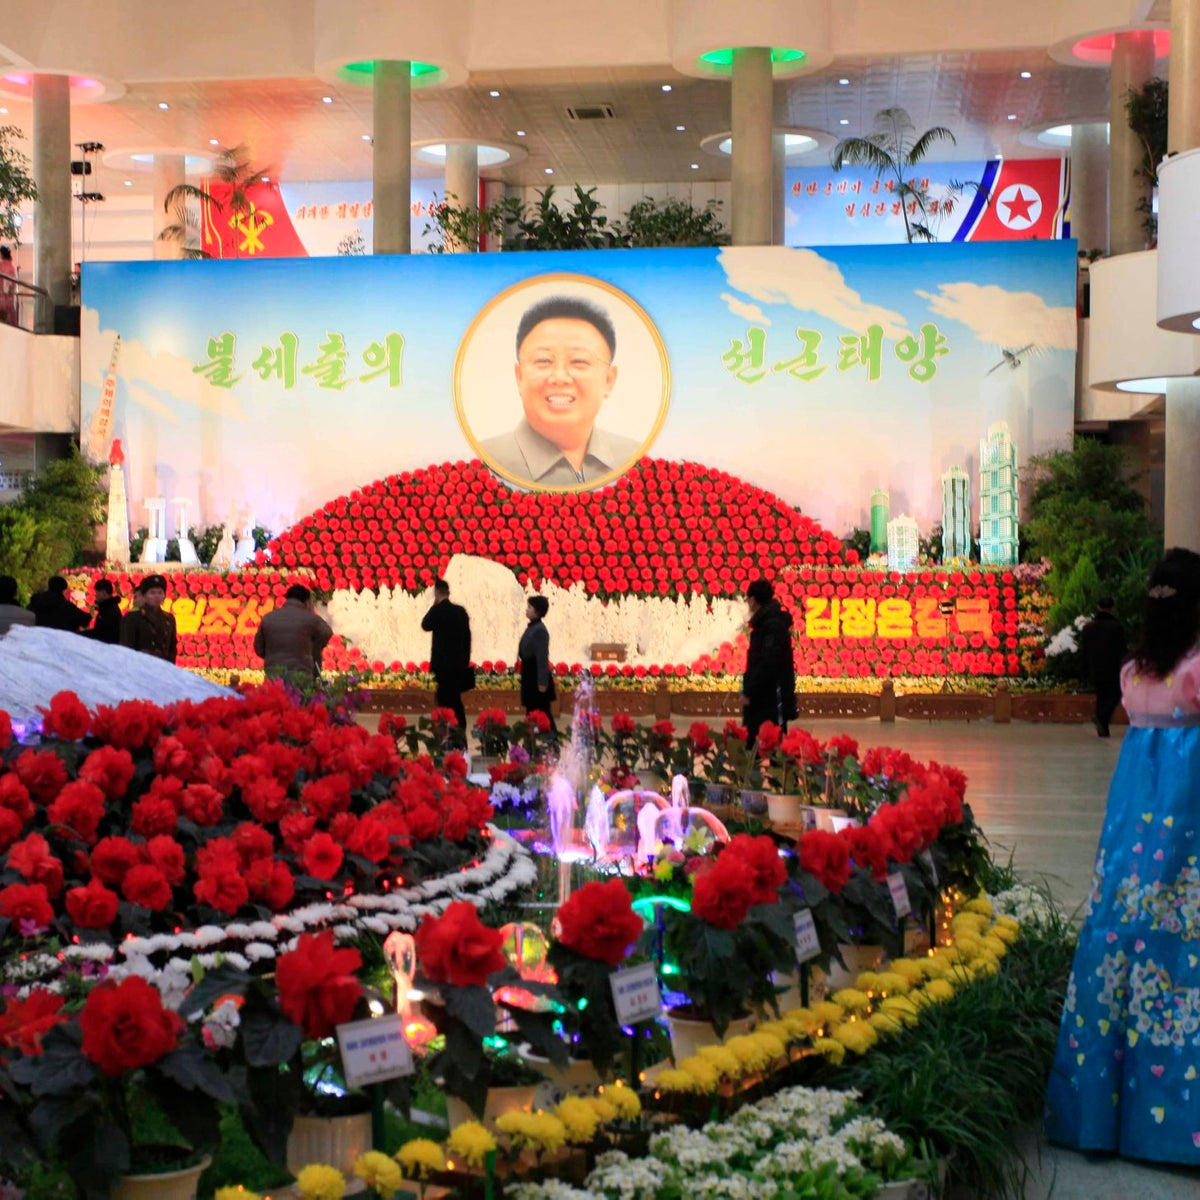 People stand near displays of flowers named after the late North Korean leader Kim Jong Il at a flower show to mark his birthday in Pyongyang, North Korea, Tuesday, Feb. 14, 2017. The annual event kicks off several days of celebrations in the North and this year also featured a depiction of the country's latest missile, which it test-launched on Sunday despite international sanctions. Kim's portrait is seen in the background.